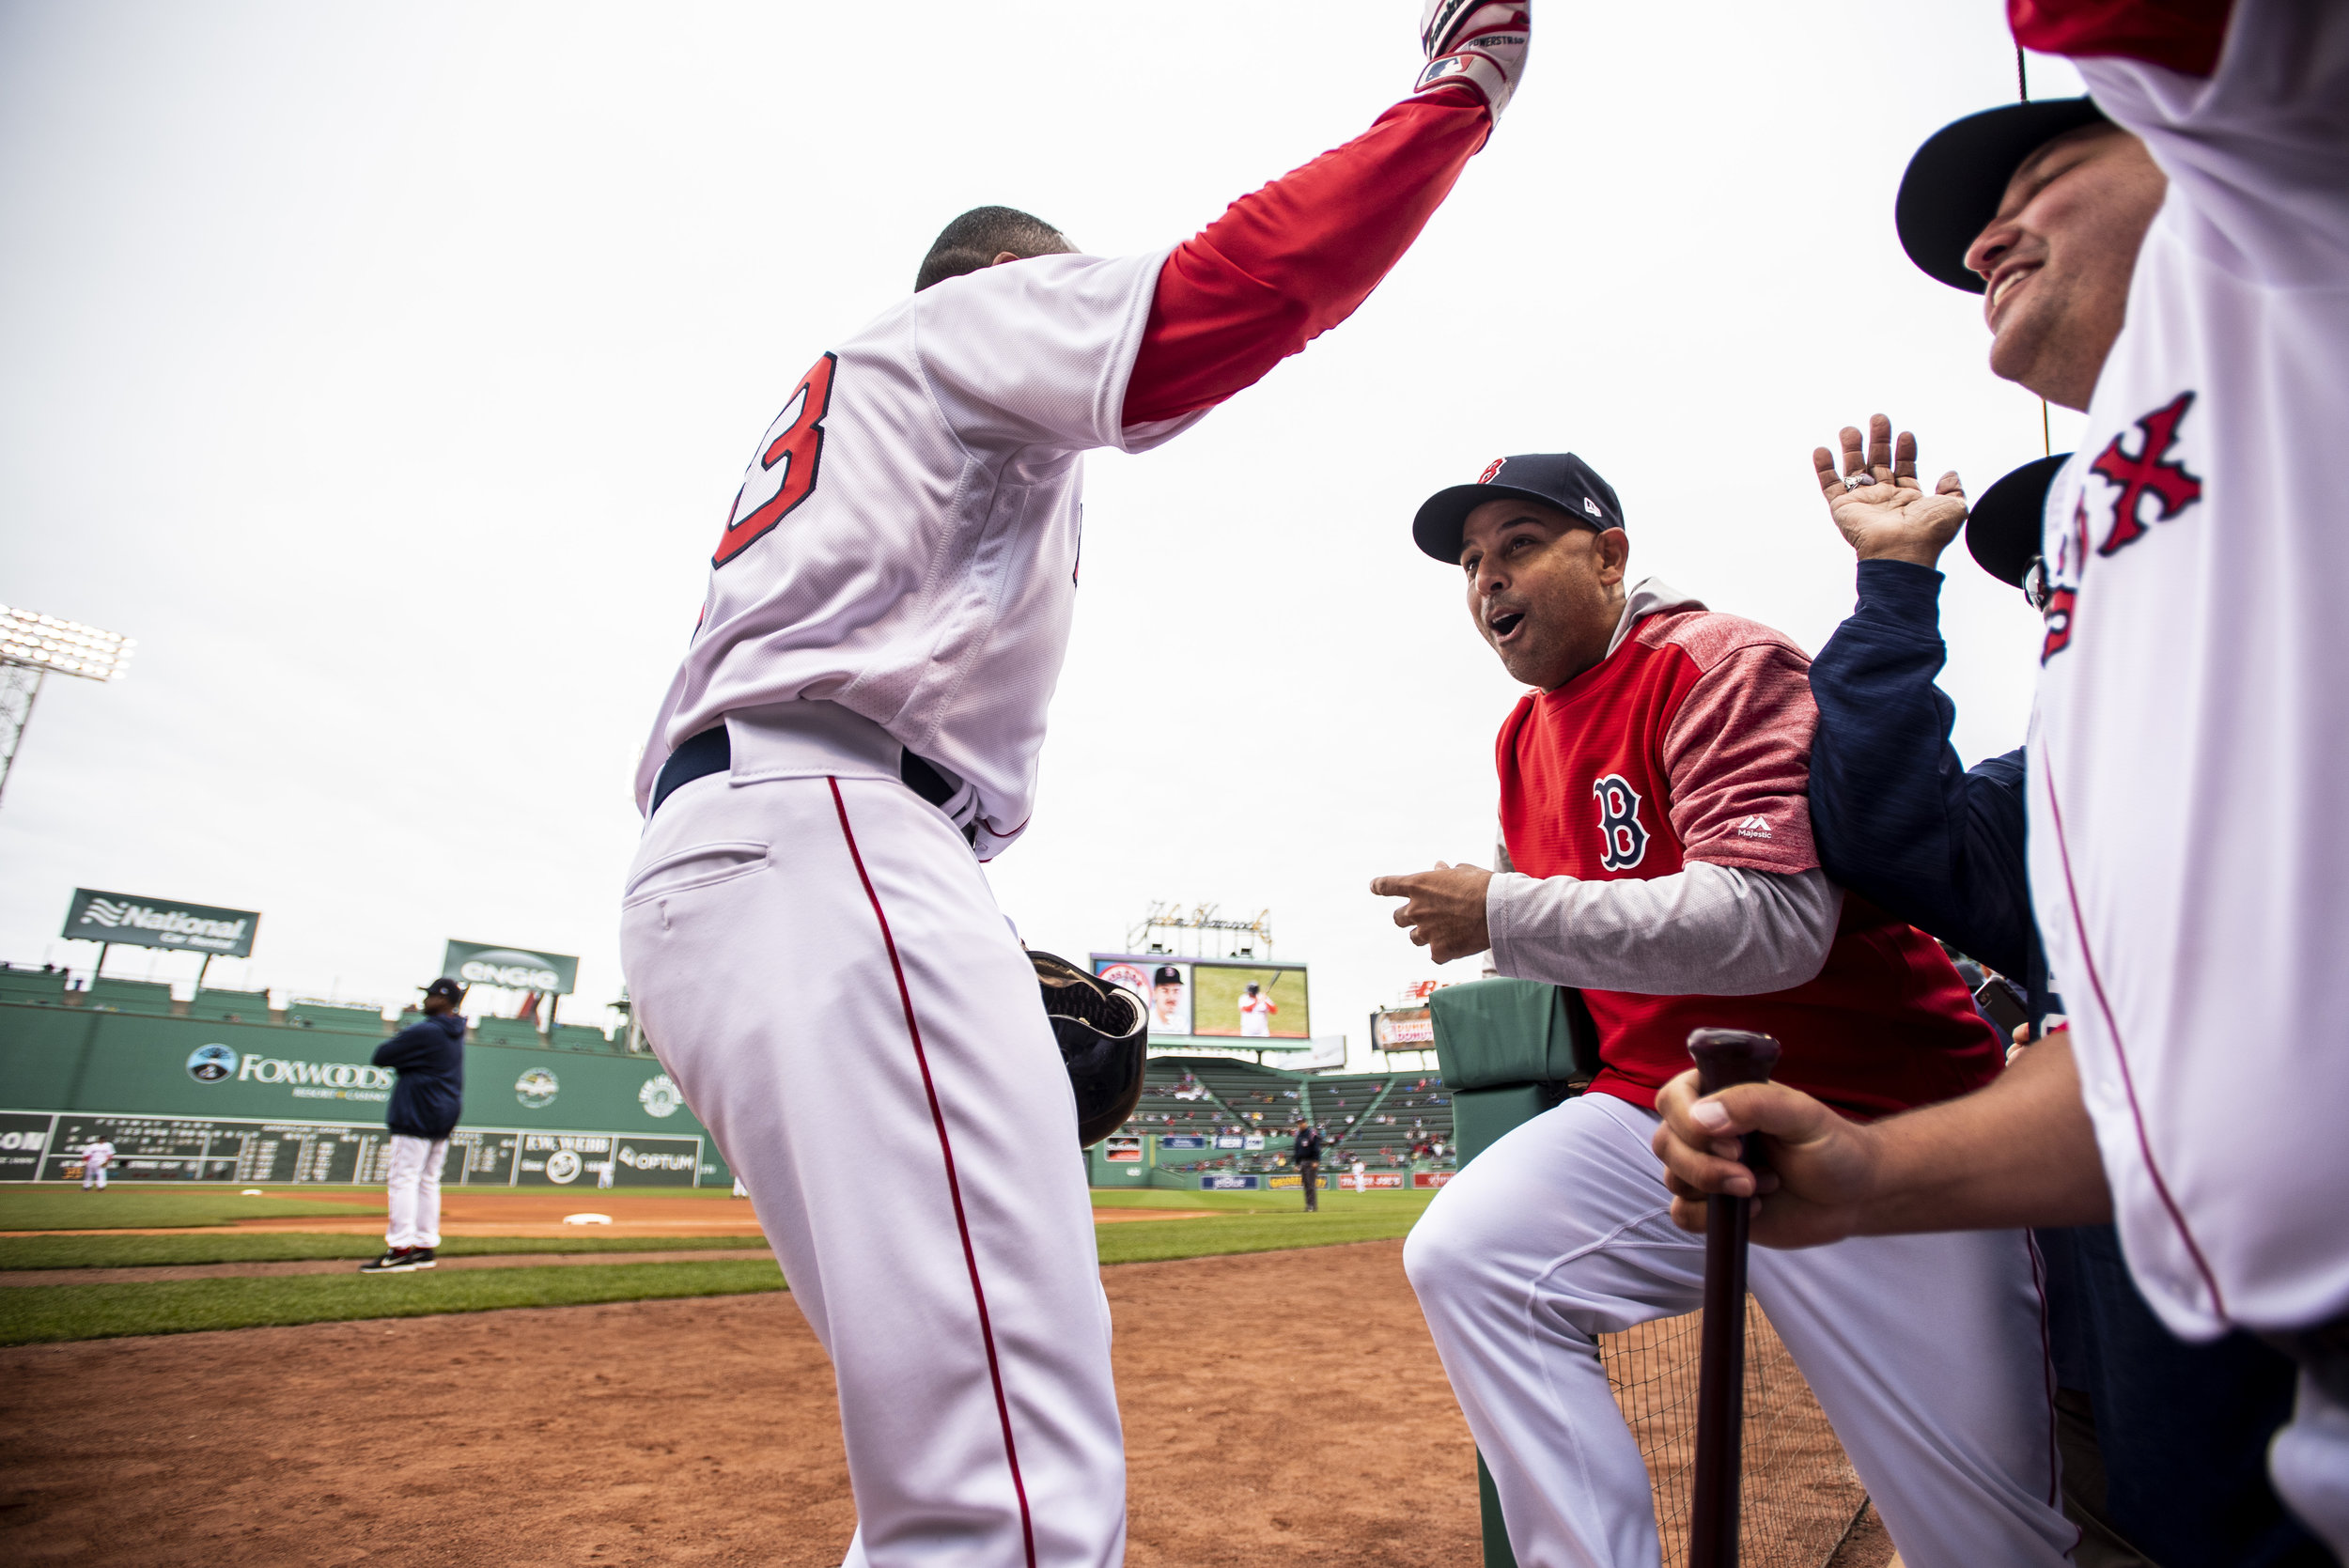 May 27, 2018, Boston, MA: Julio Lugo returns to the dugout after hitting a home run off of Pedro Martinez during the Red Sox Alumni Game at Fenway Park in Boston, Massachusetts on Sunday, May 27, 2018. (Photo by Matthew Thomas/Boston Red Sox)